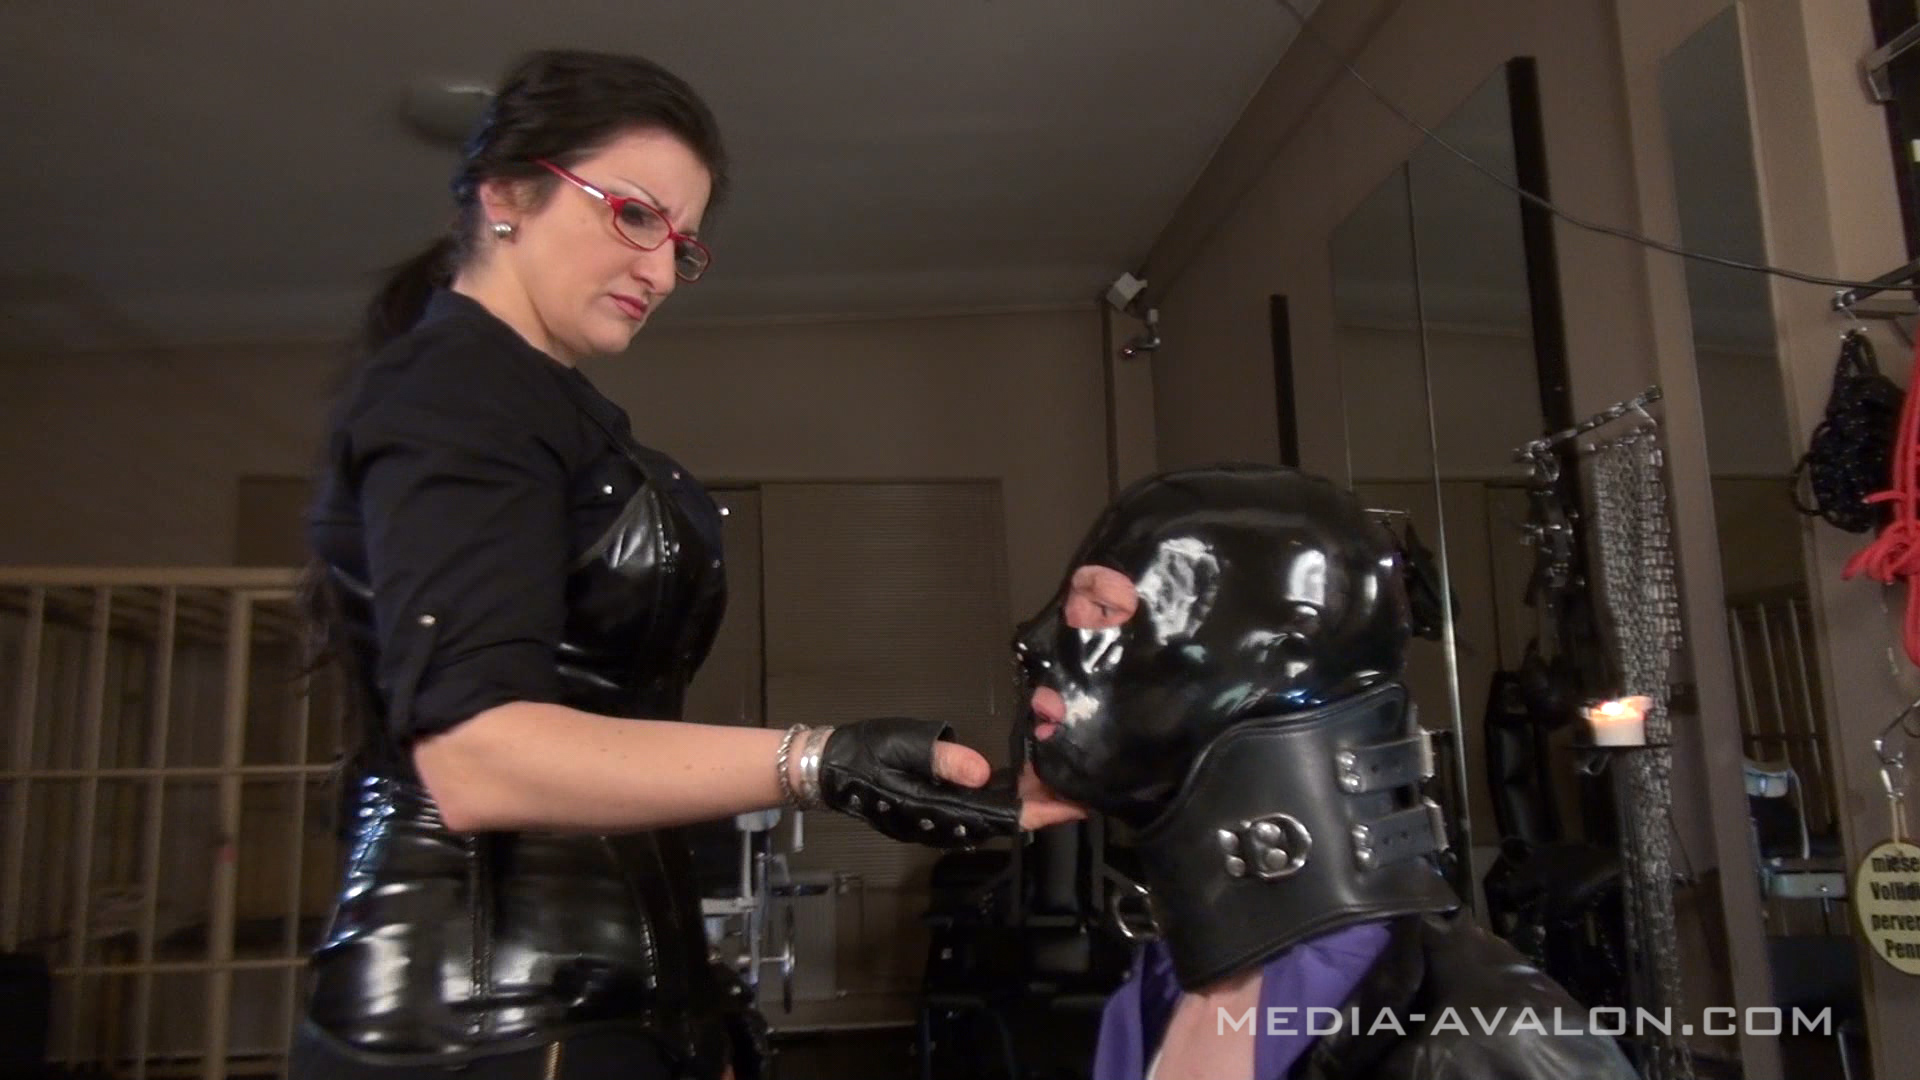 Latexslave with mask